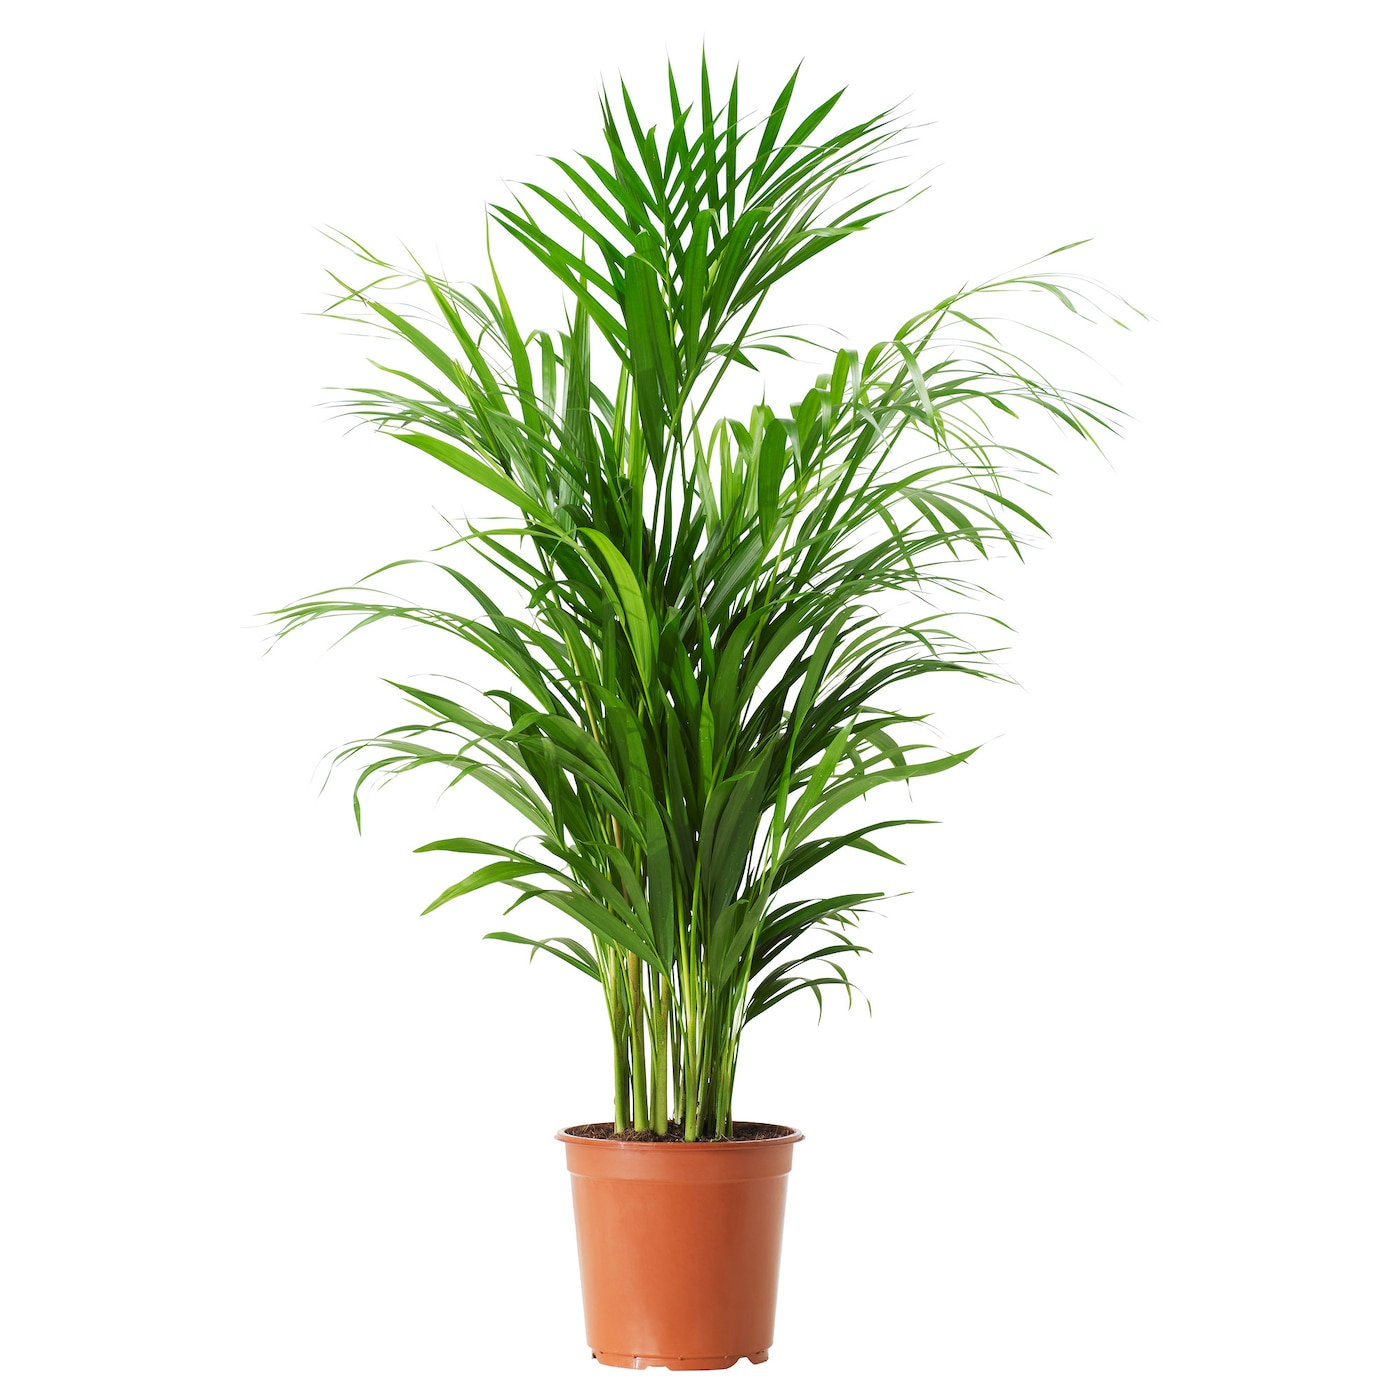 chrysalidocarpus lutescens potted plant areca palm 21 cm ikea. Black Bedroom Furniture Sets. Home Design Ideas